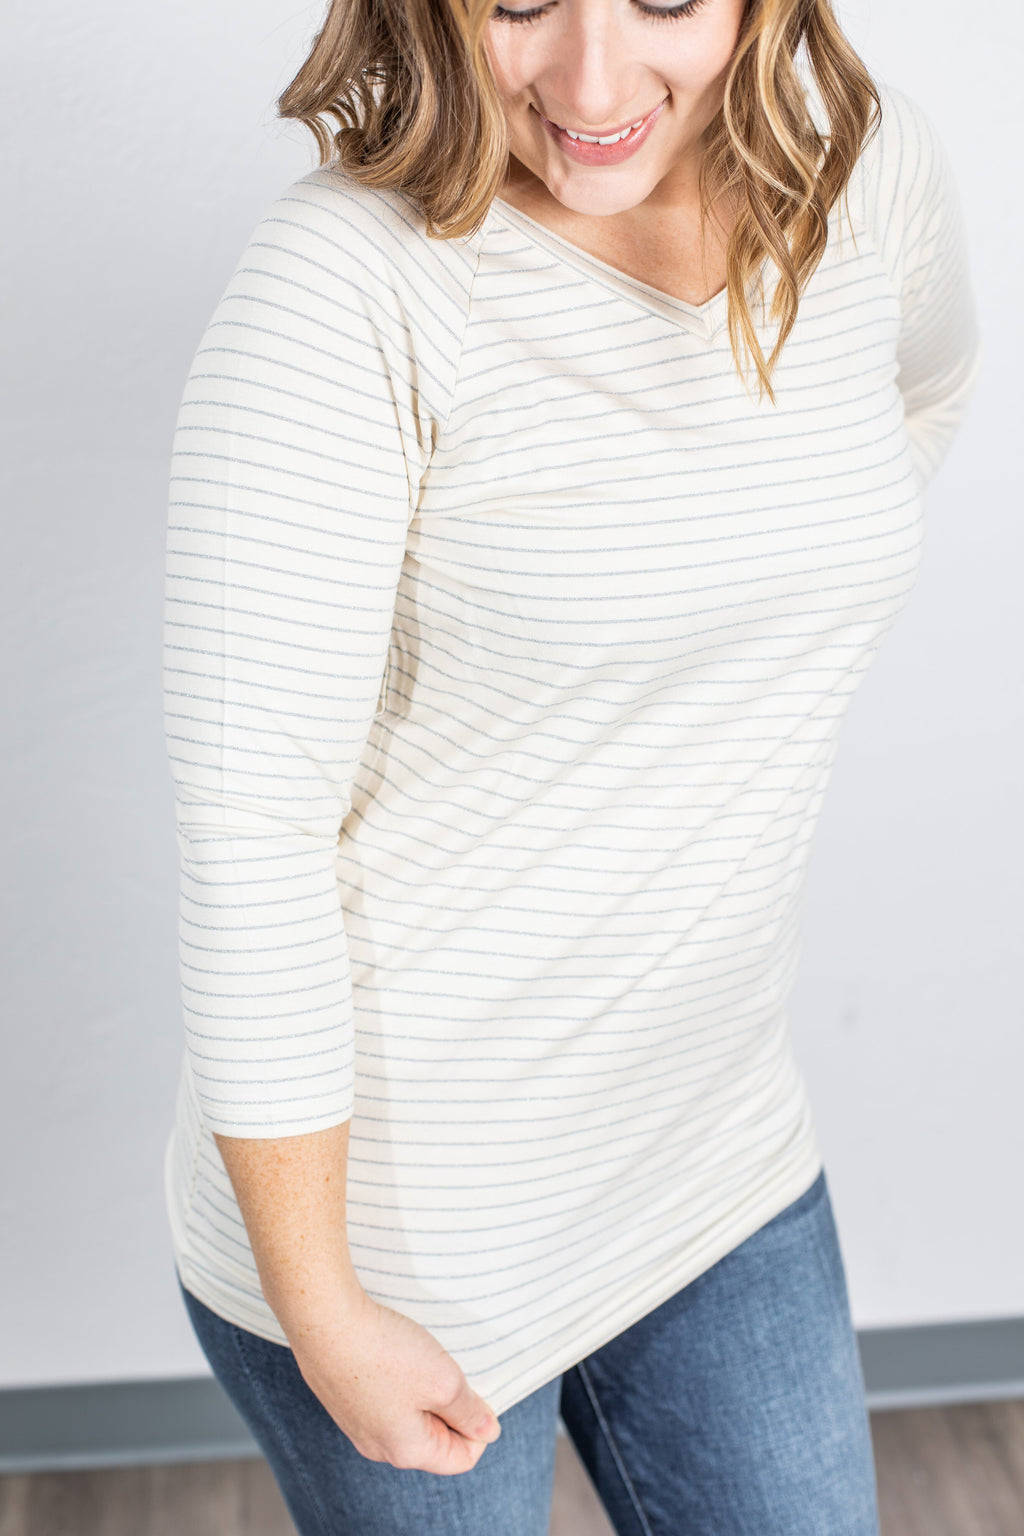 Kennedy Silver Stripe Top - Ivory ONLINE EXCLUSIVE